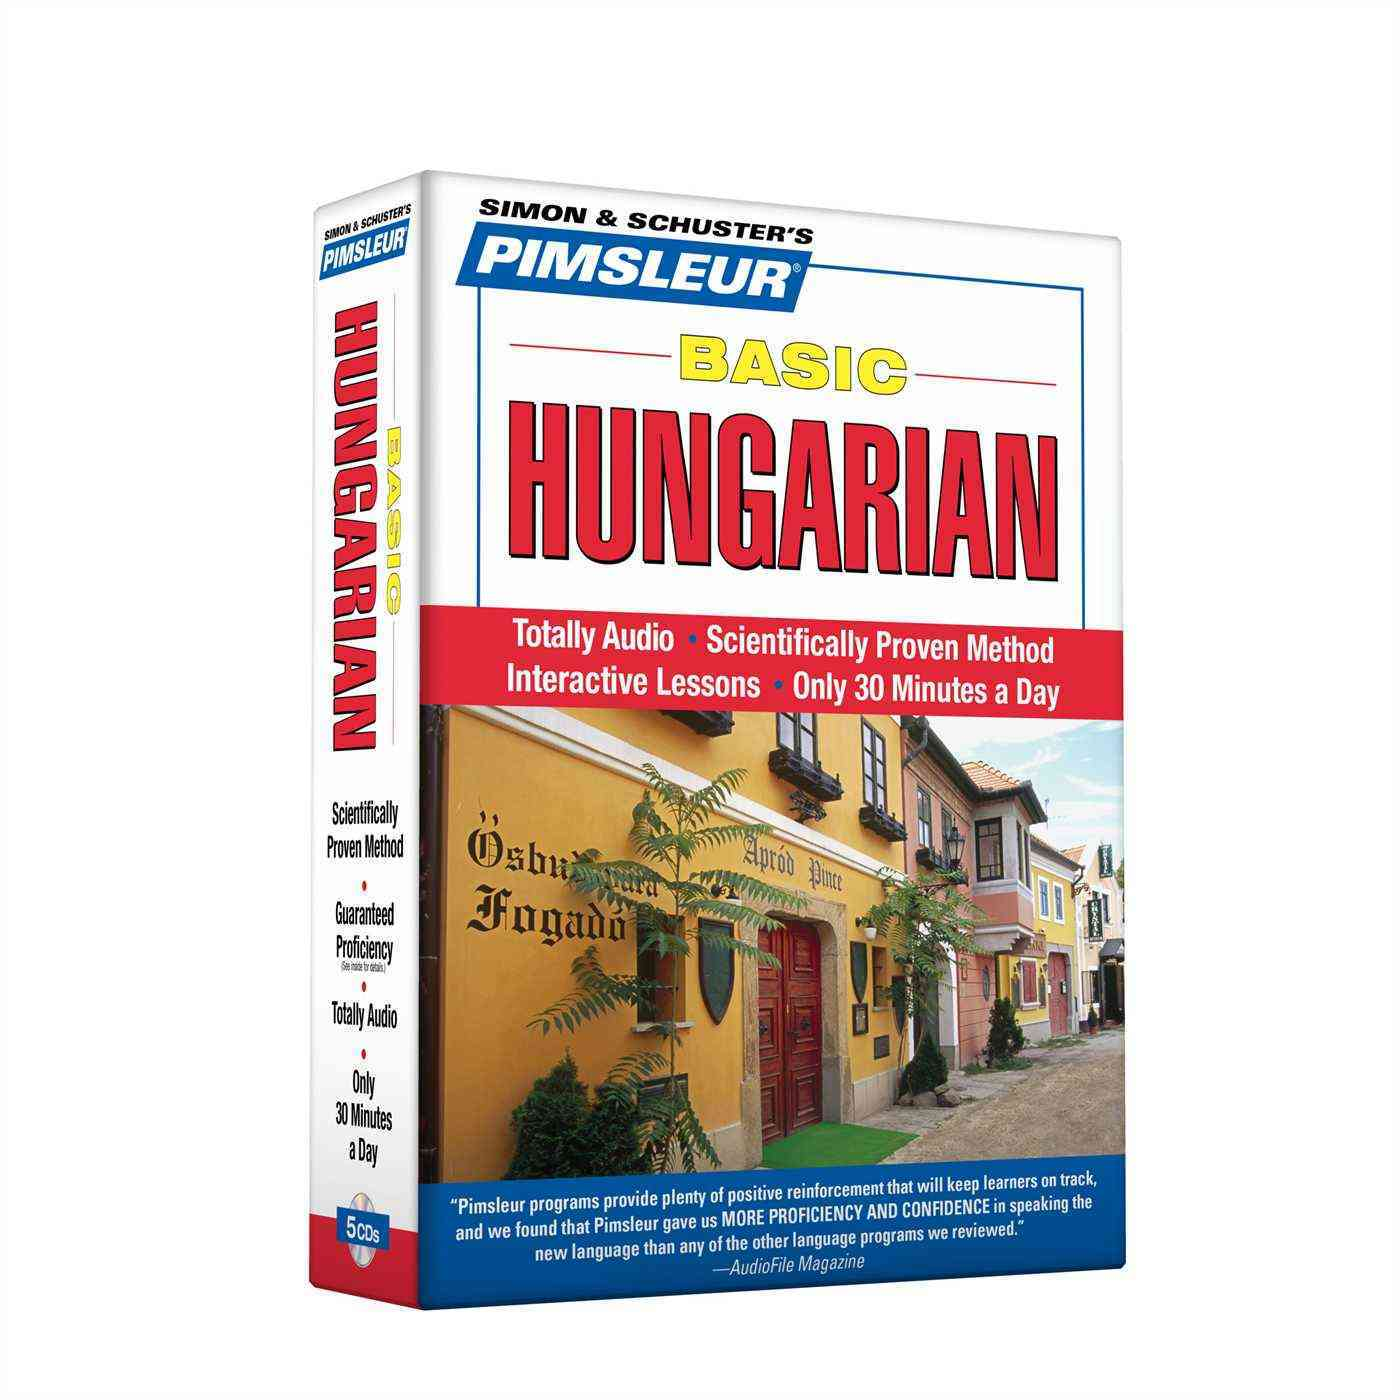 [CD] Basic Hungarian By Pimsleur